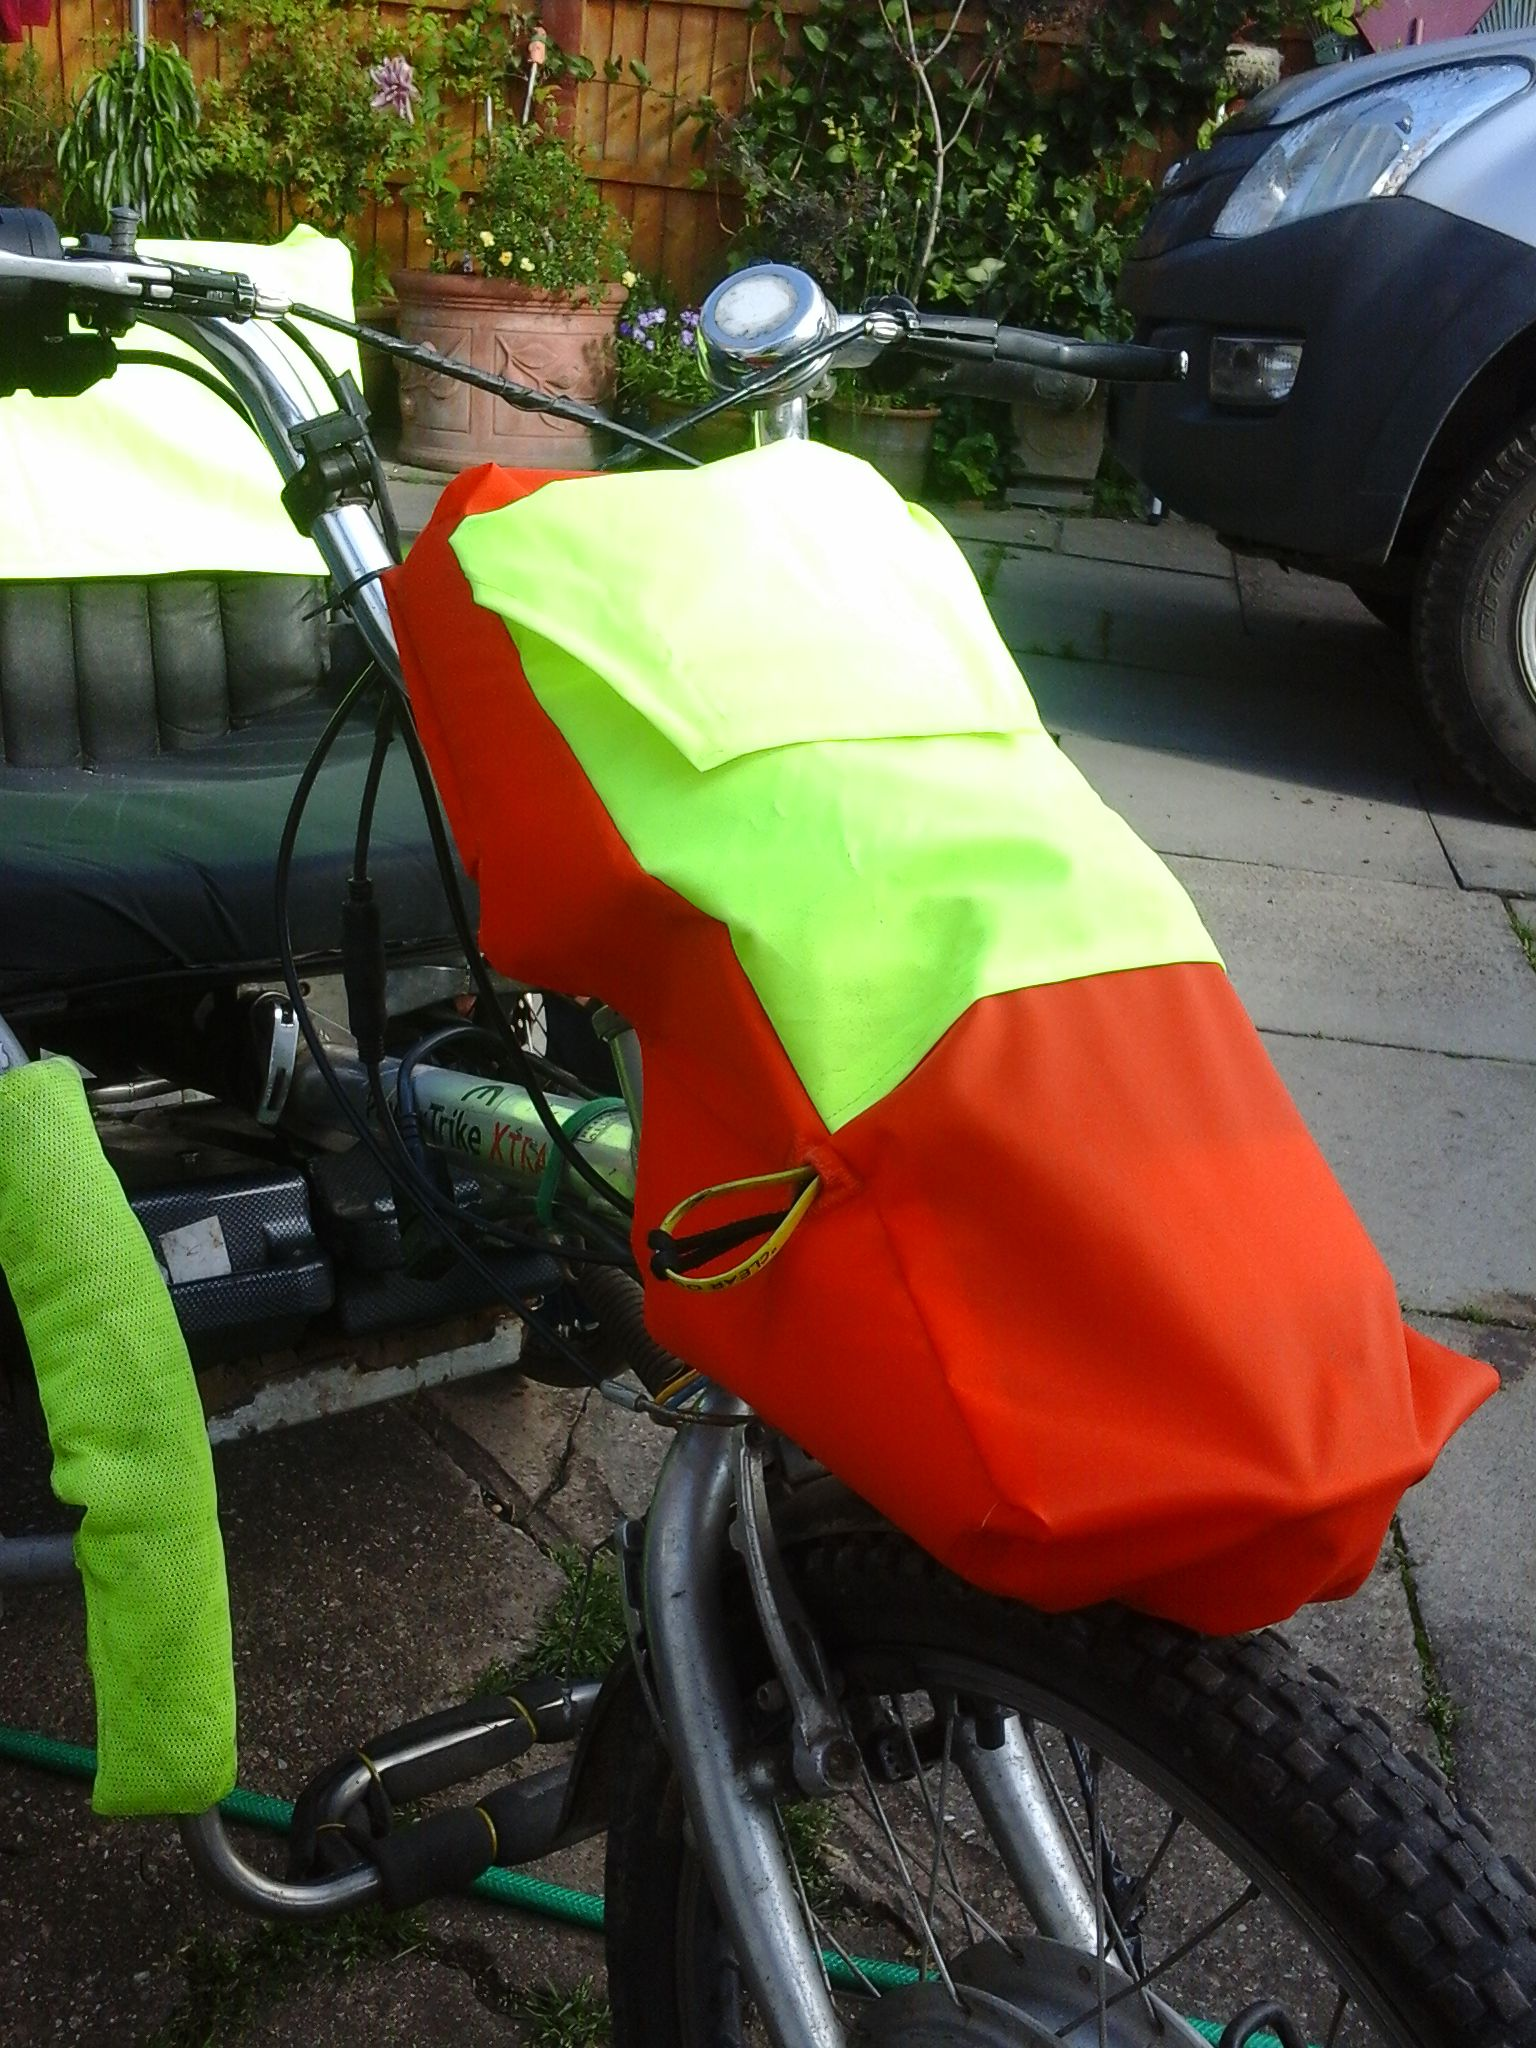 Patsys powertrike cover